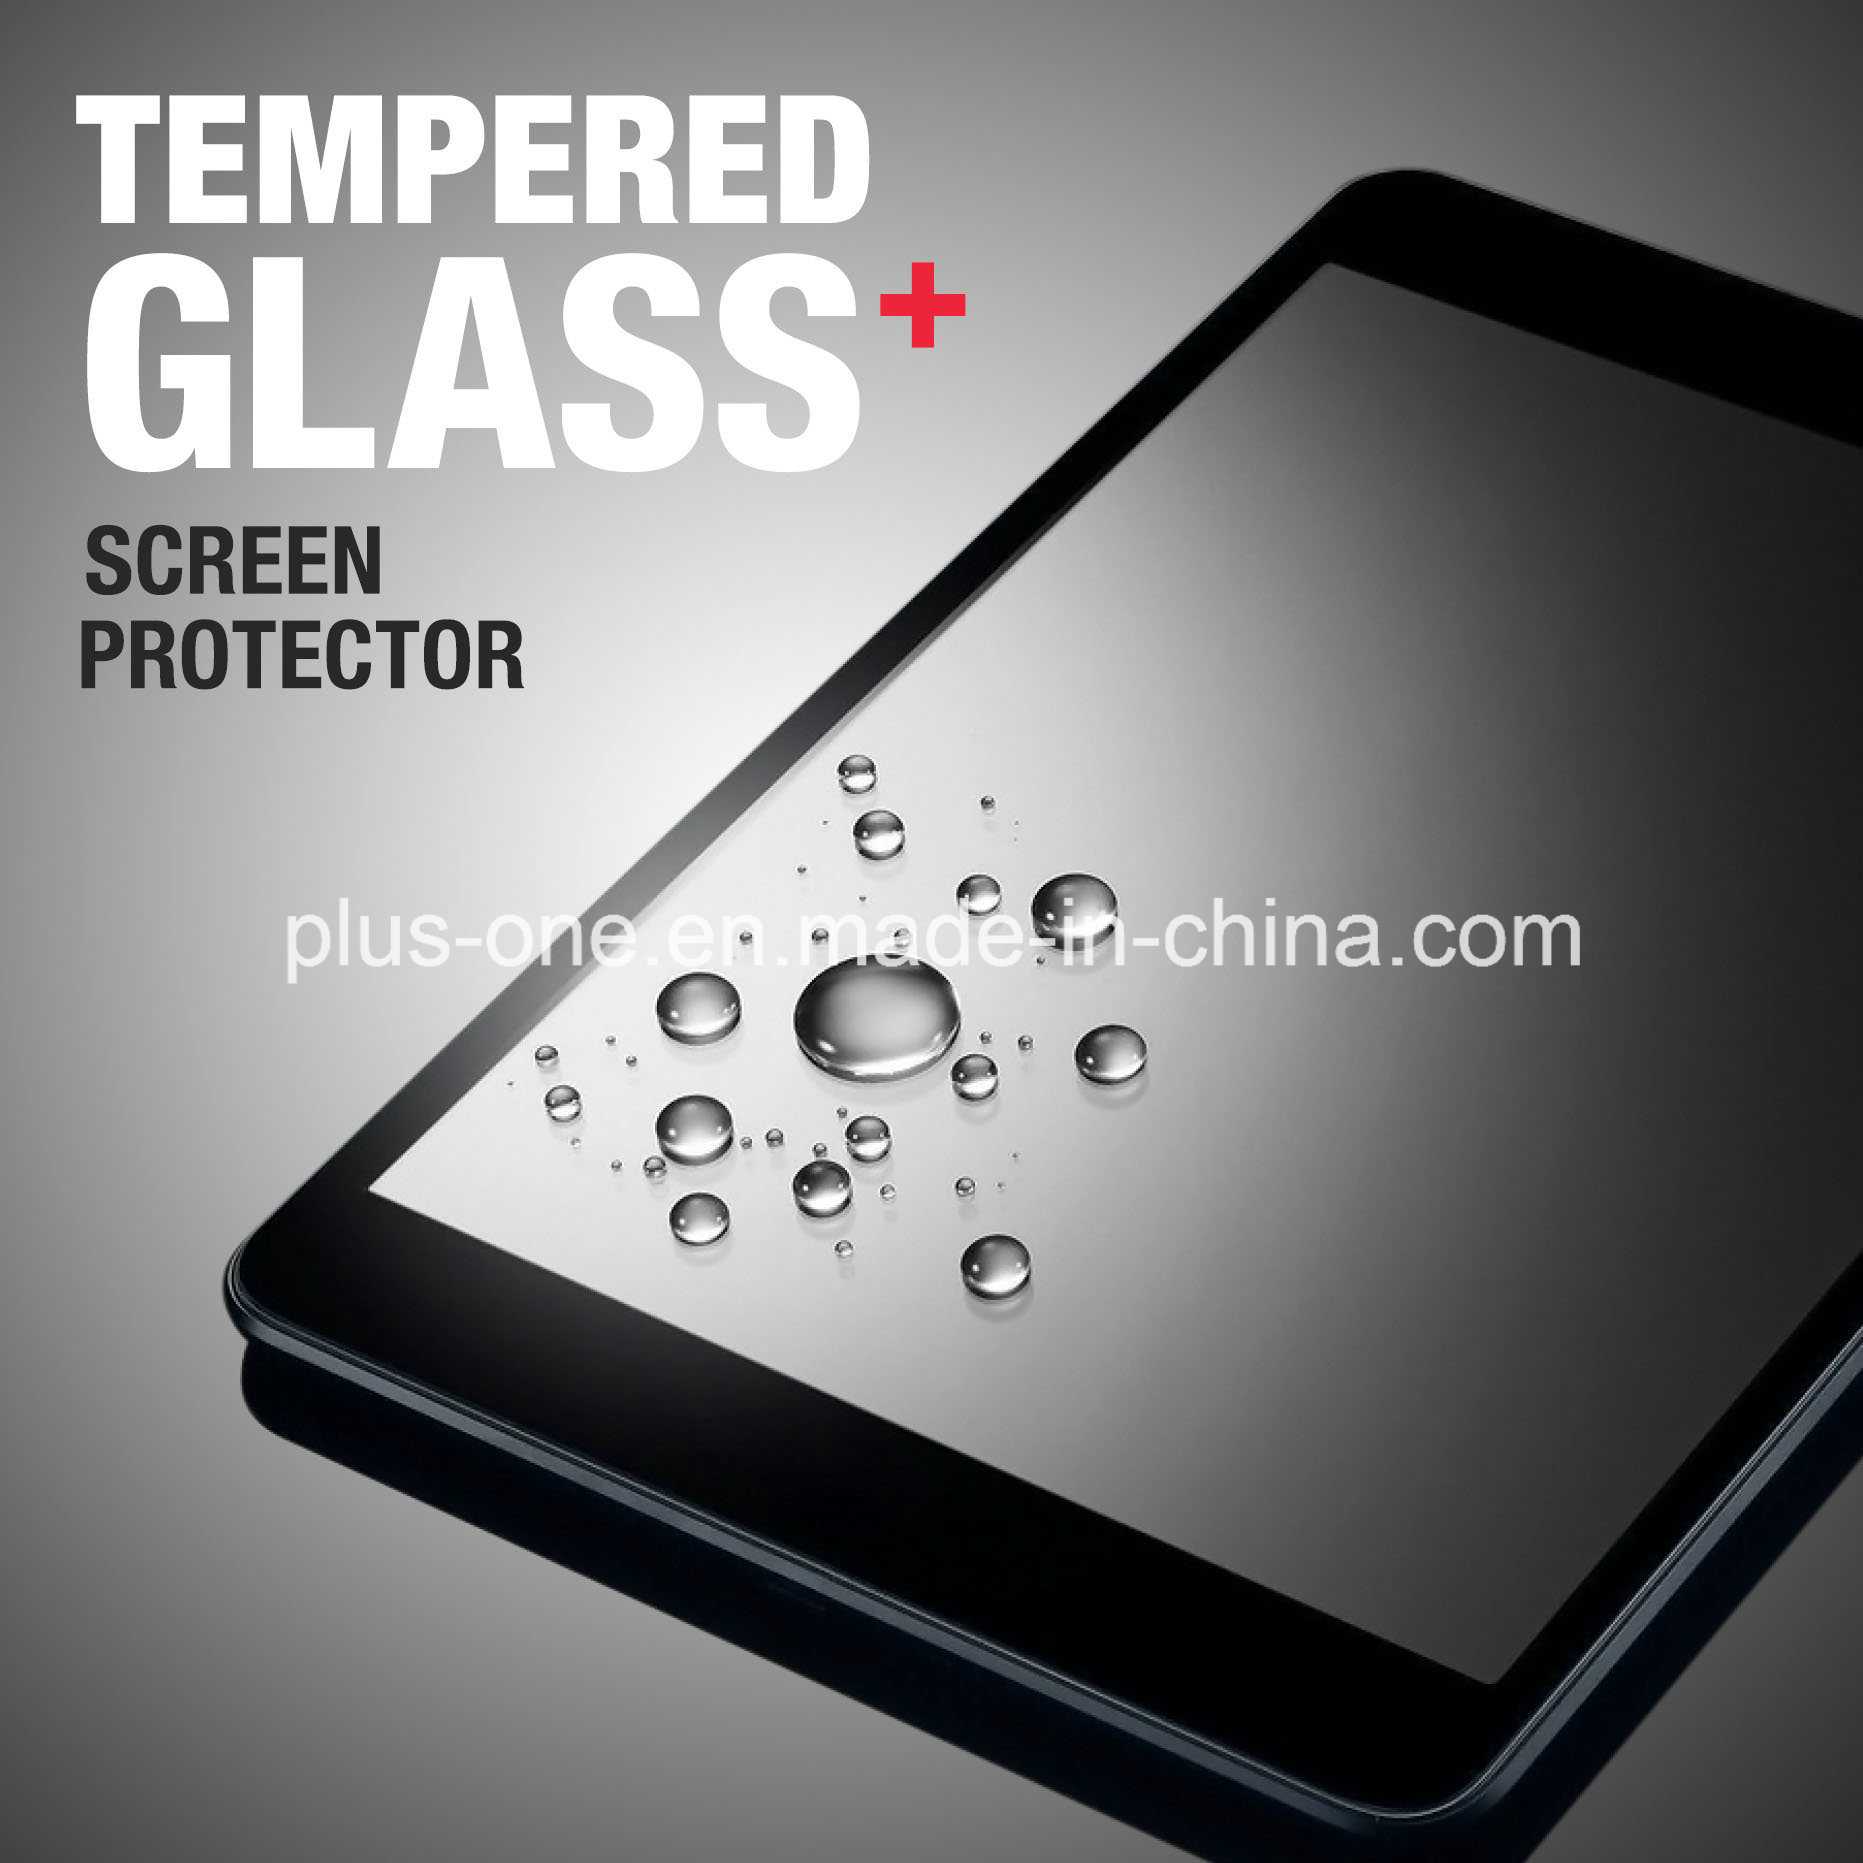 "HD Tempered Glass Screen Protector for iPad Air/iPad PRO 9.7"" 2017 Cell/Mobile Phone Accessories"